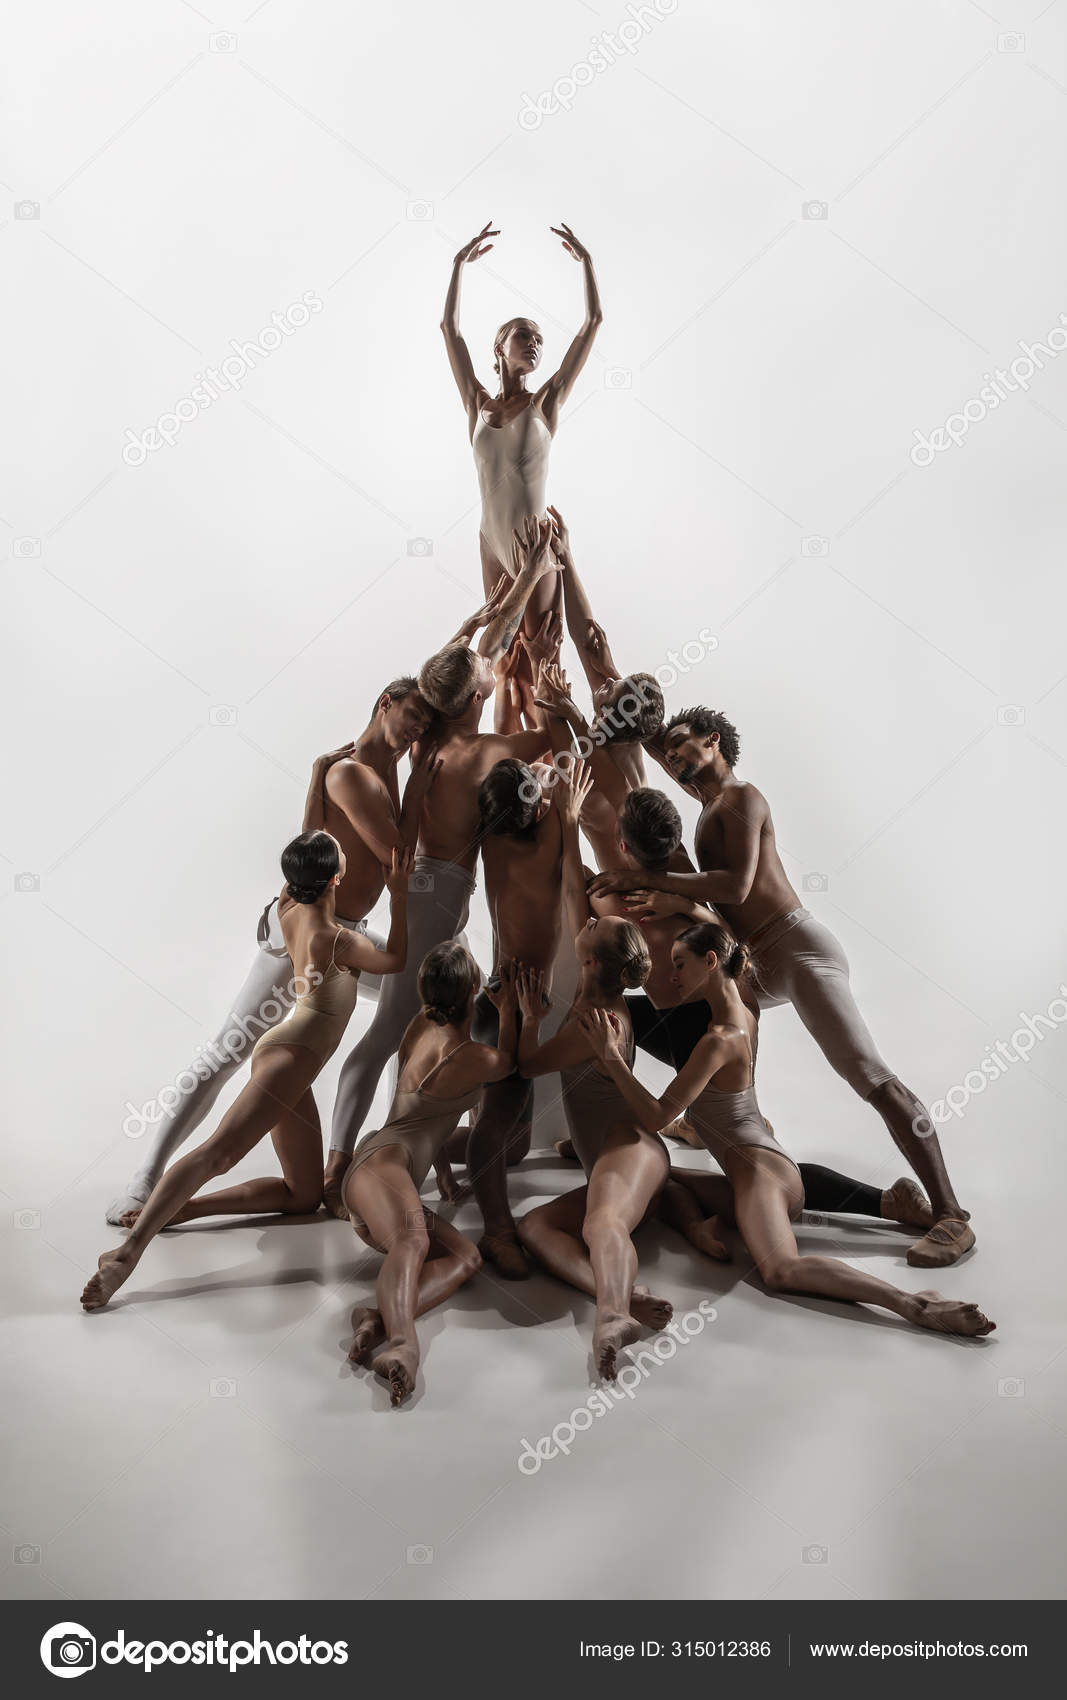 The group of modern ballet dancers. Contemporary art ballet. Young flexible athletic  men and women. — Stock Photo © vova130555@gmail.com #315012386